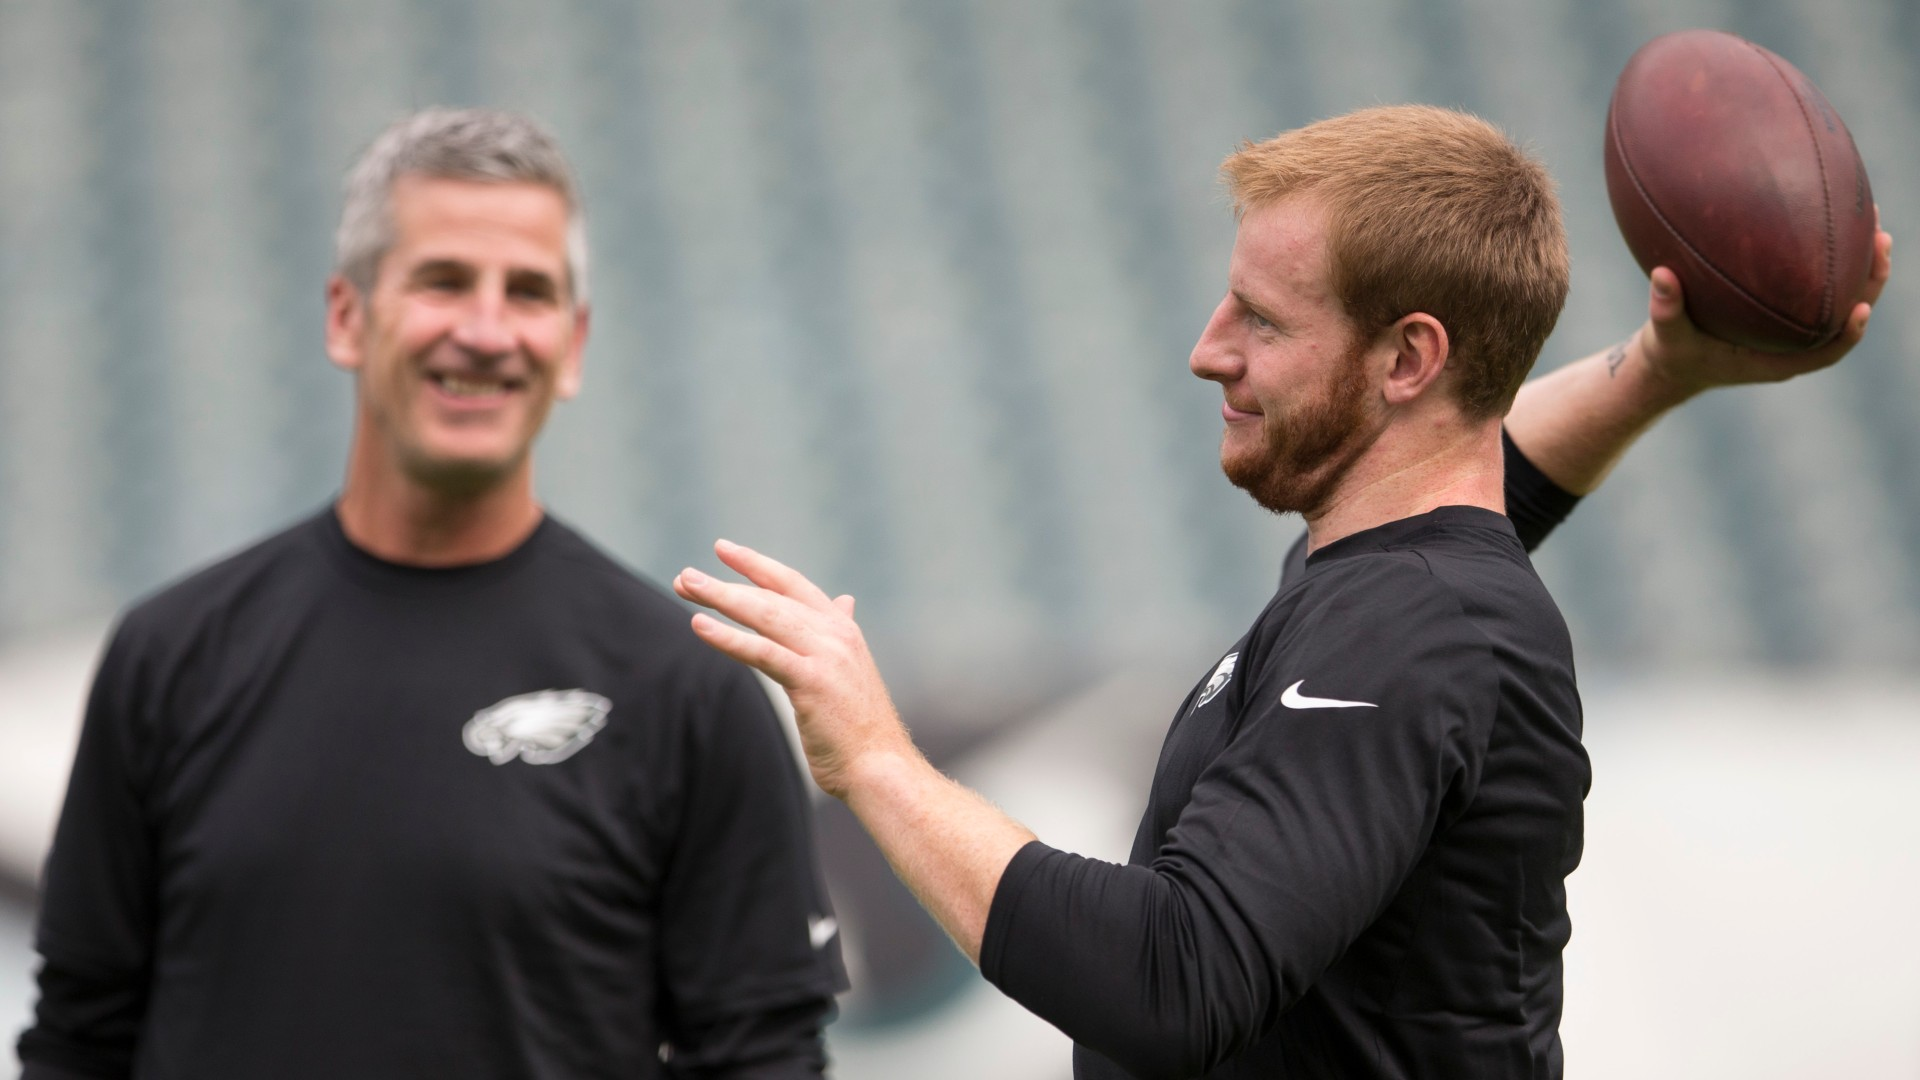 The Indianapolis Colts have put their faith in Frank Reich to get Carson Wentz back to his best; the rewards could be huge if he succeeds.